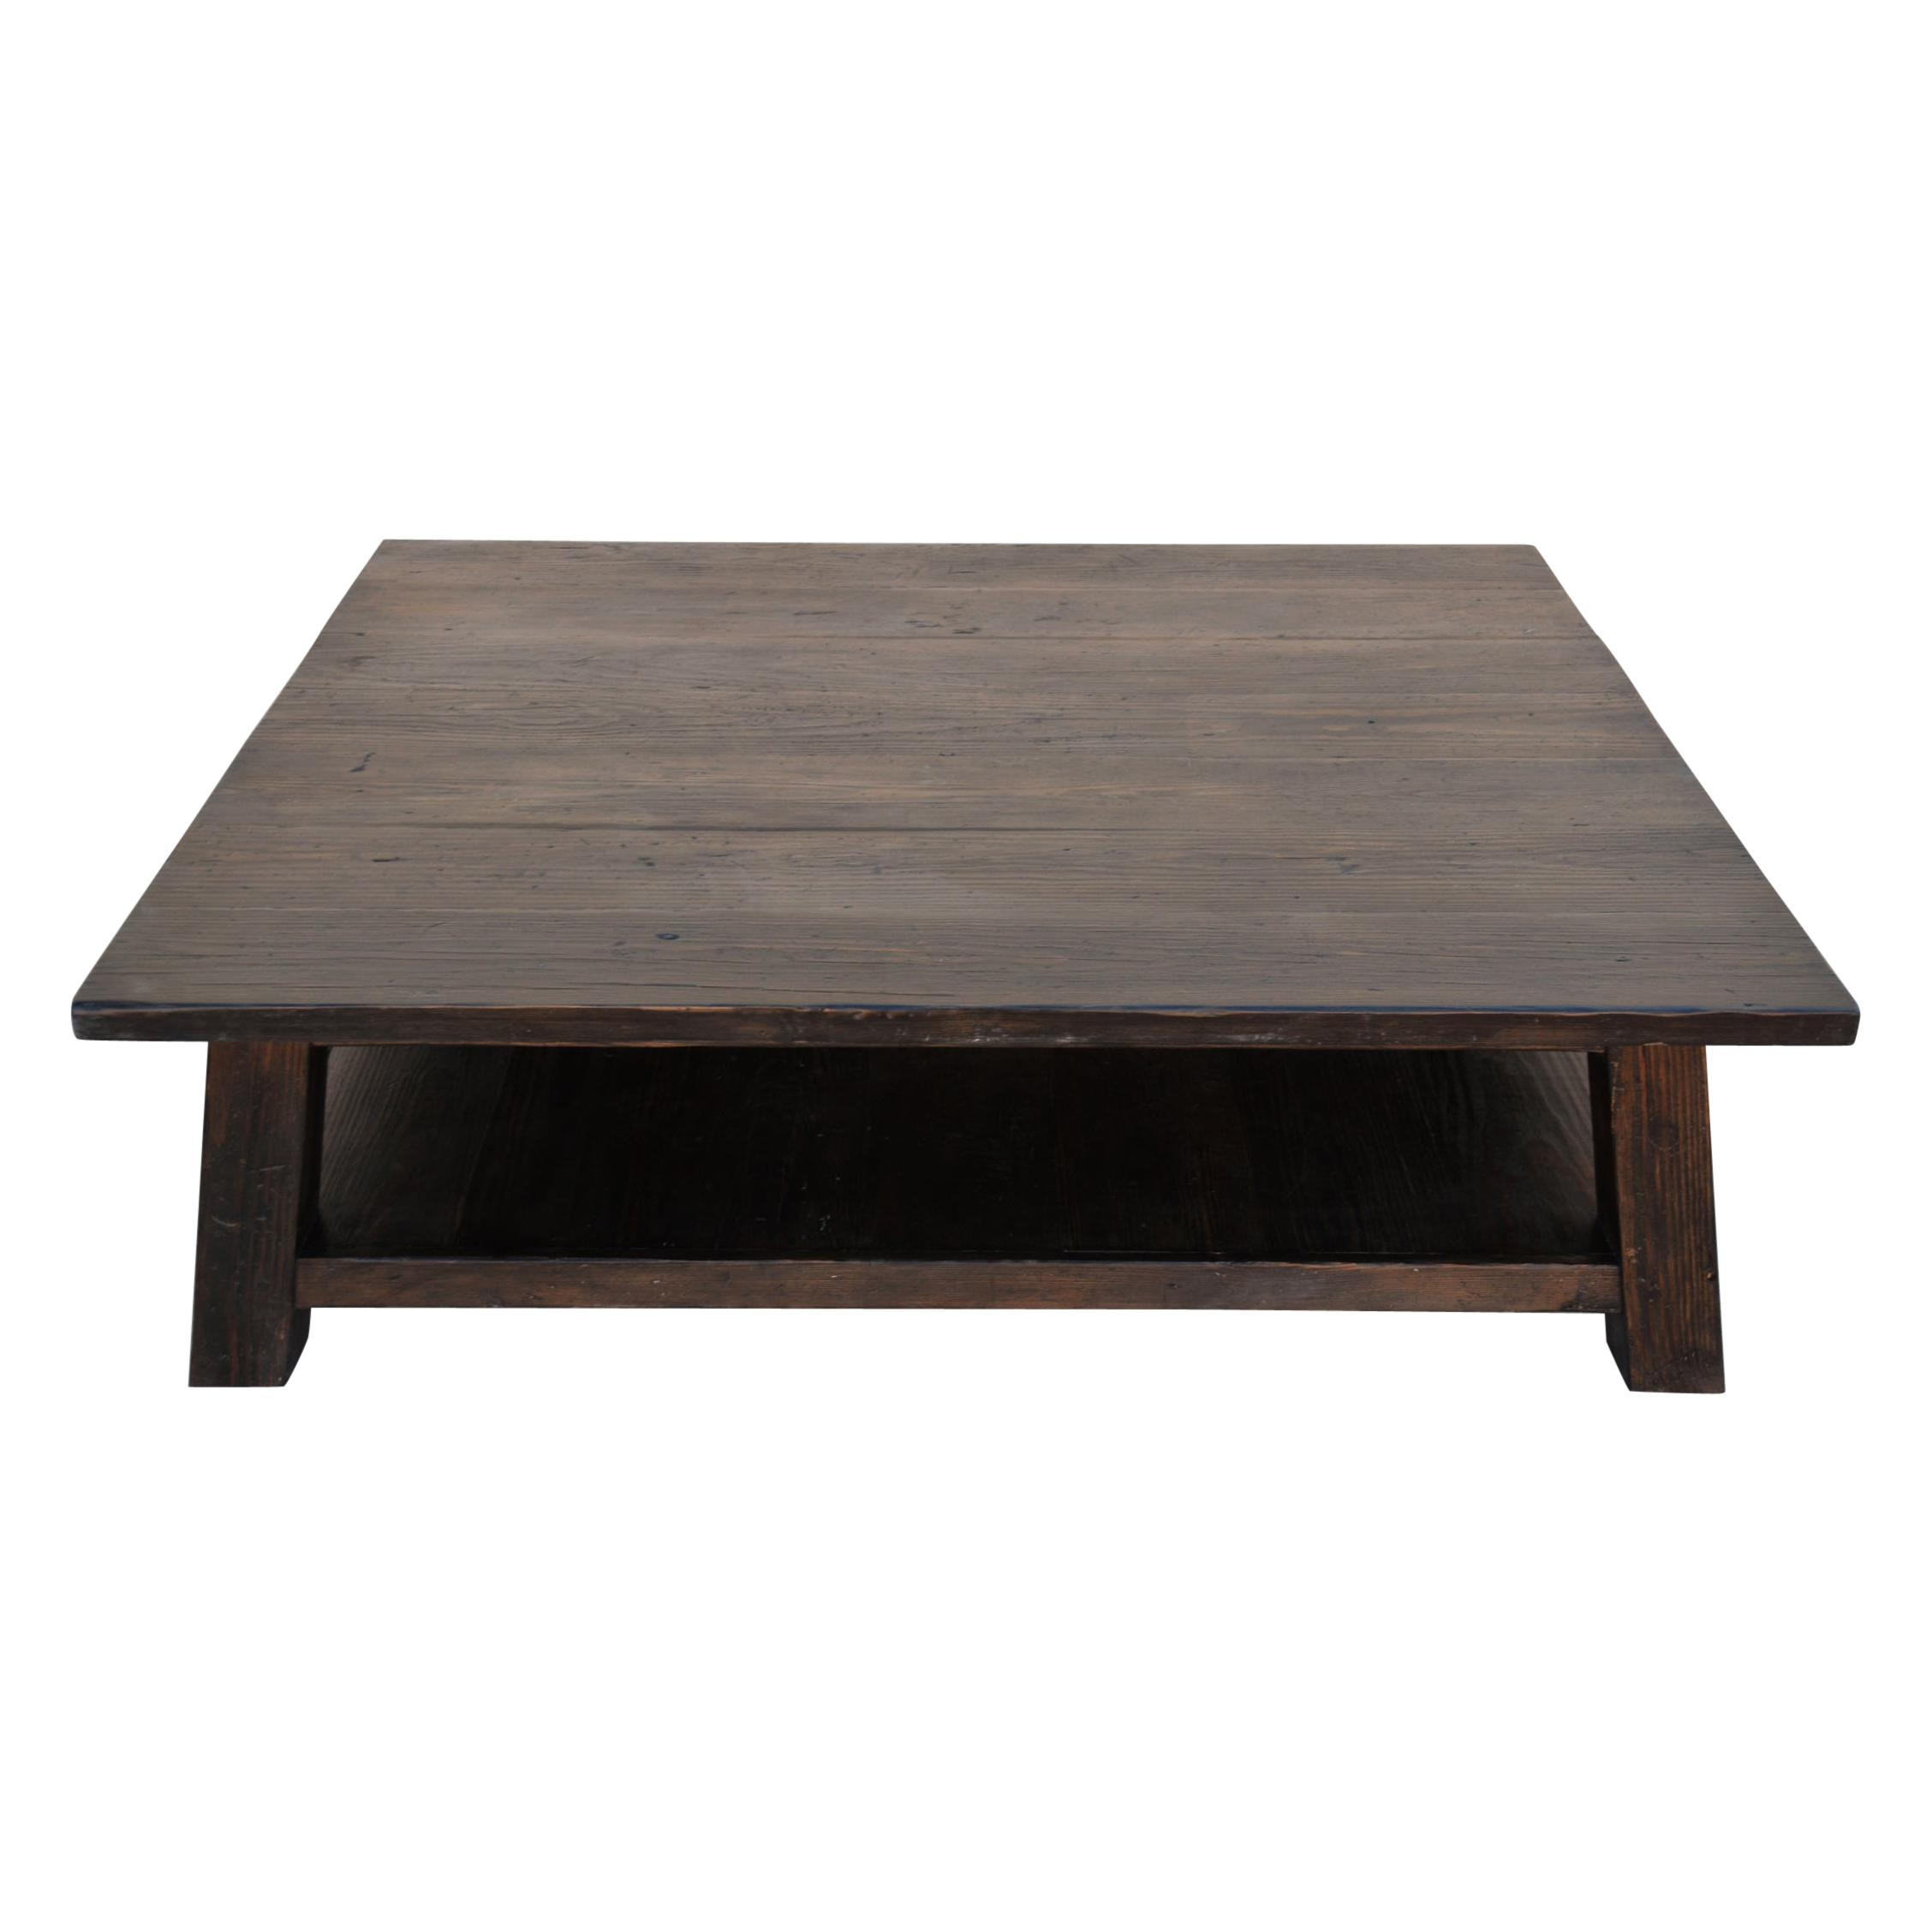 American Craftsman Coffee And Cocktail Tables – 51 For Sale Intended For Current Sawyer Industrial Reclaimed Rectangular Cocktail Tables (View 6 of 20)